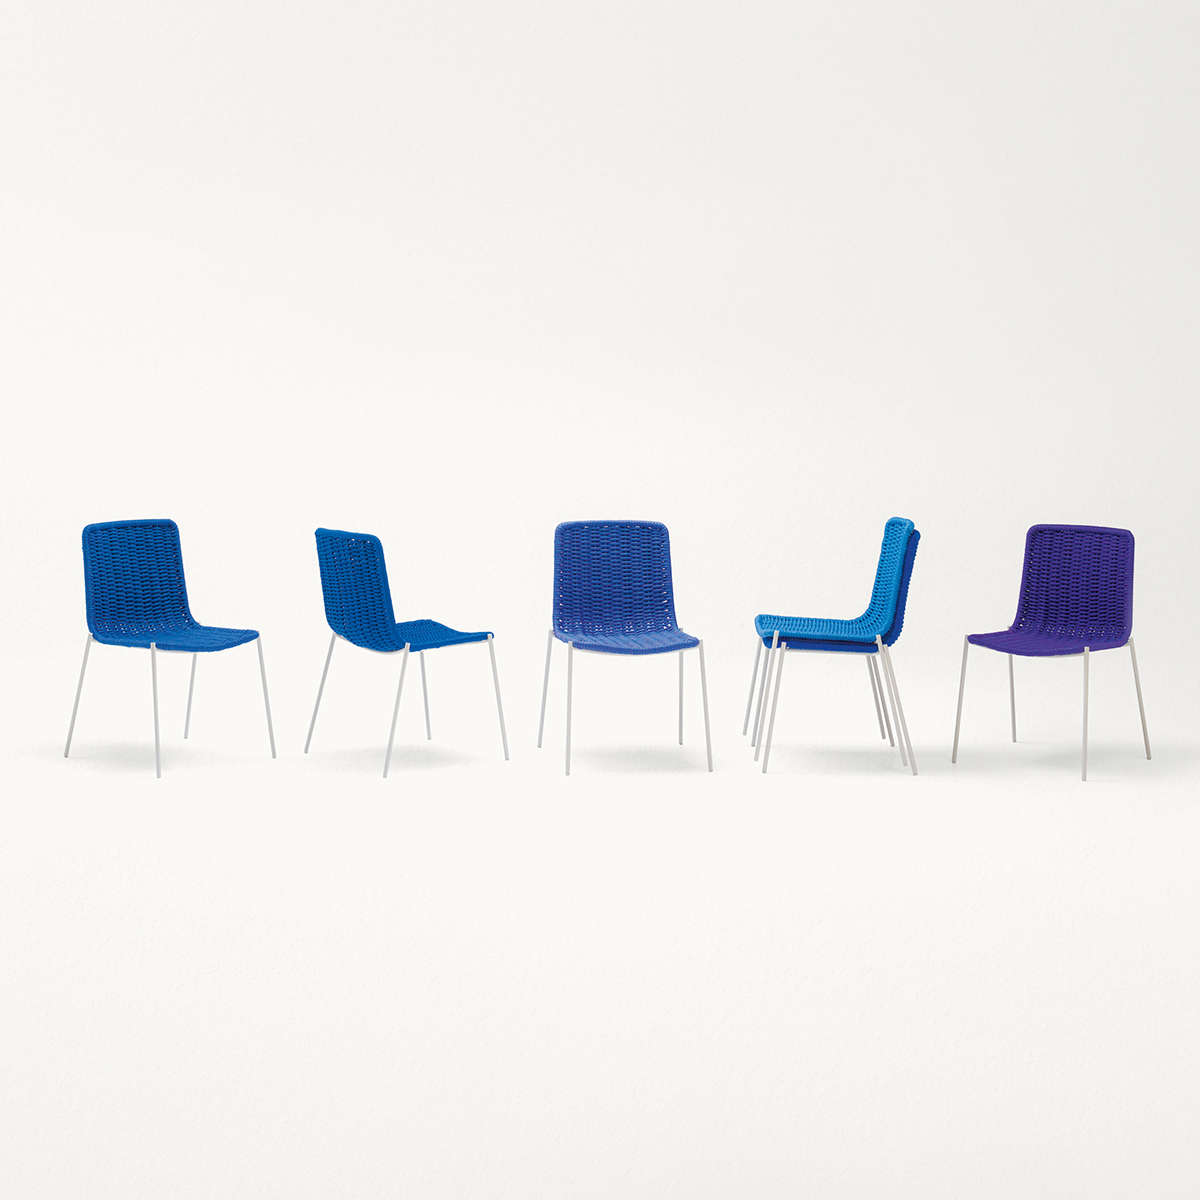 Paola Lenti Kiti Dining Chair Studio 10